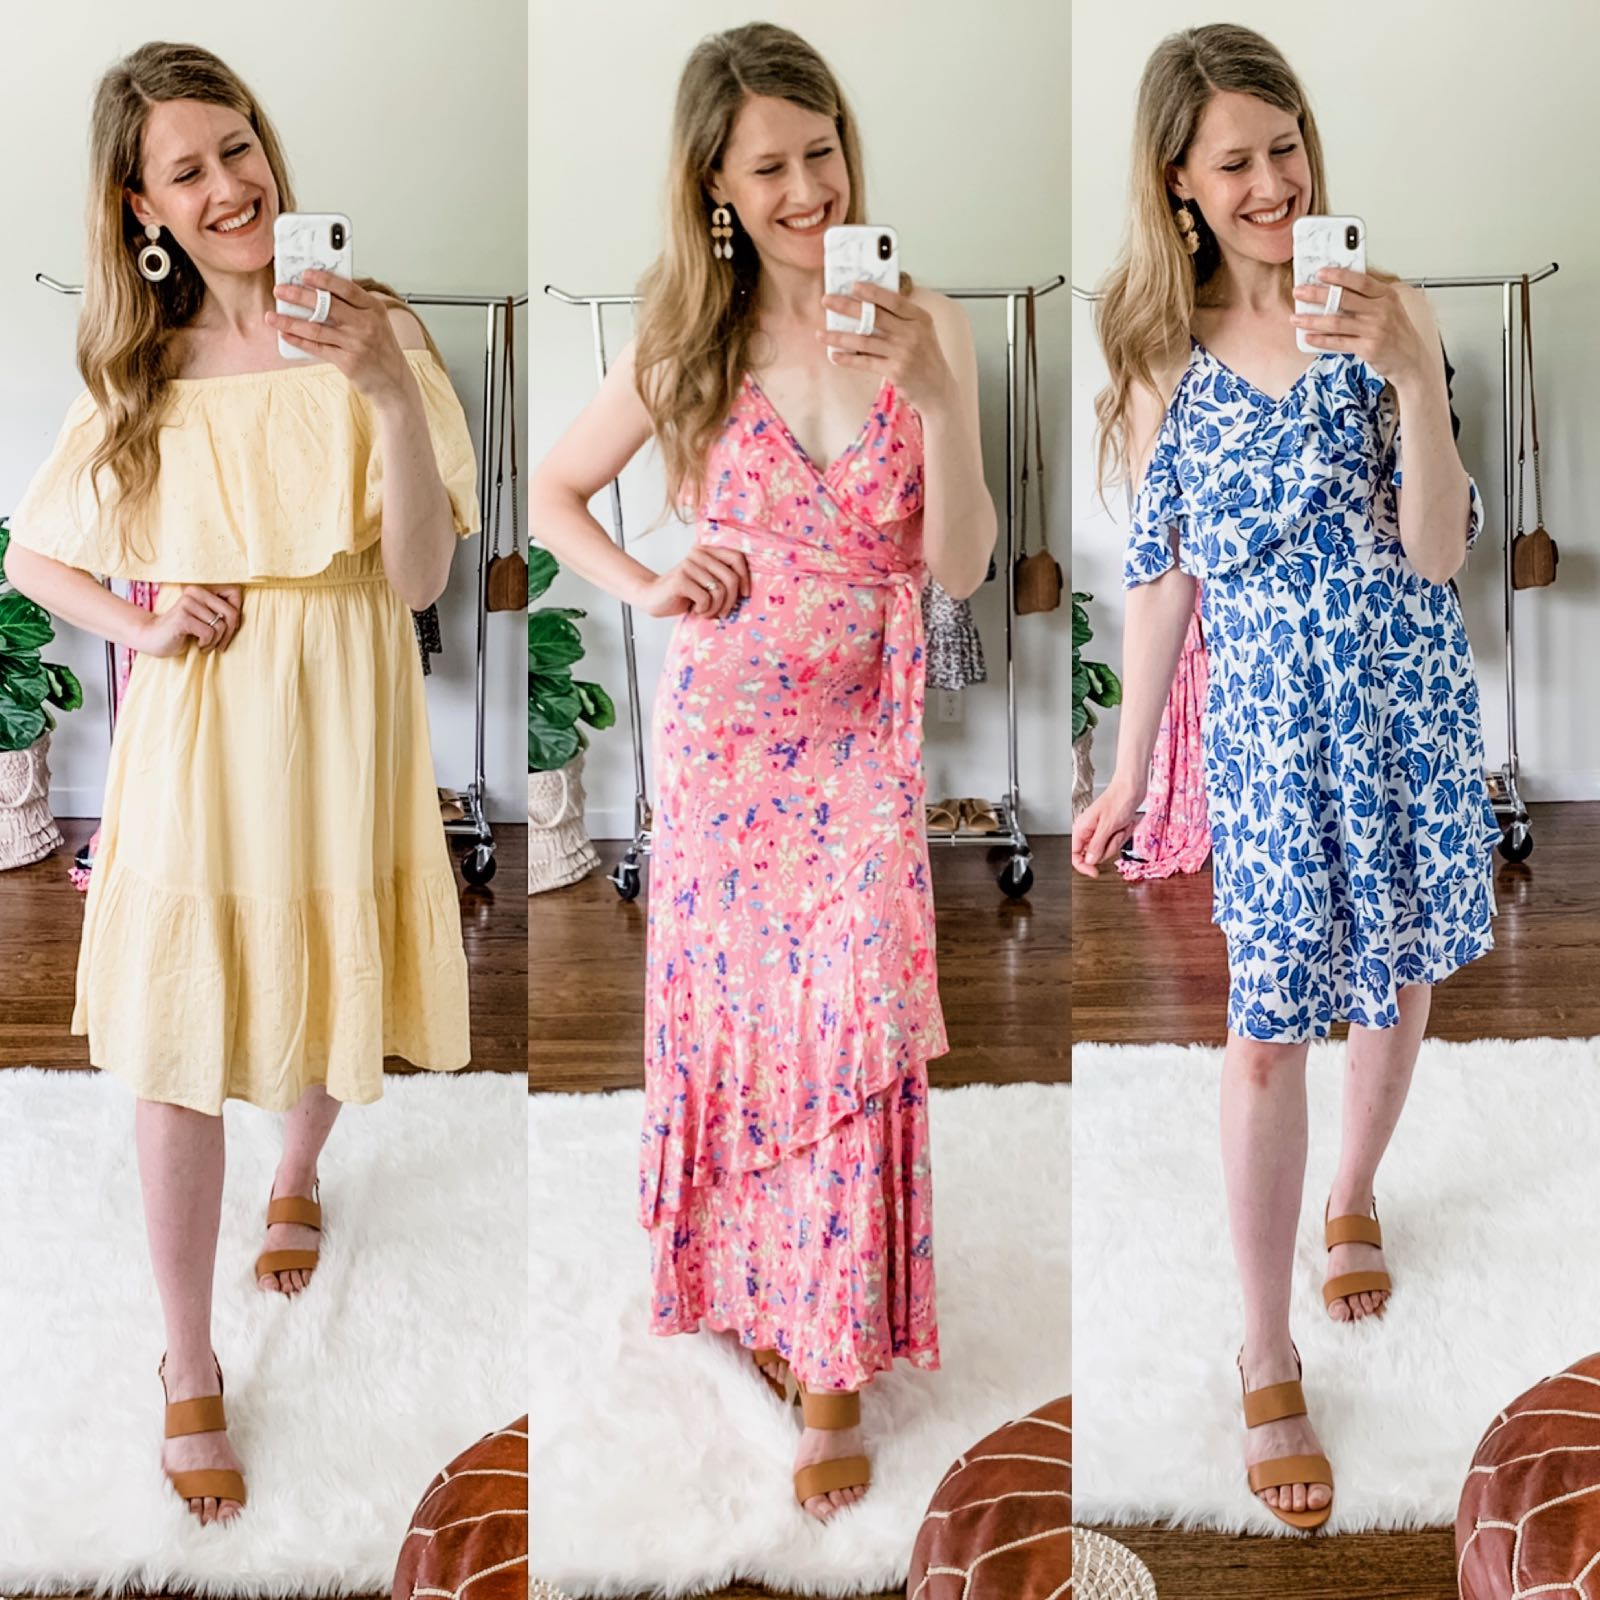 48717541bc0 Summer dresses from the Sofia Vergara collection at Walmart - under  40!